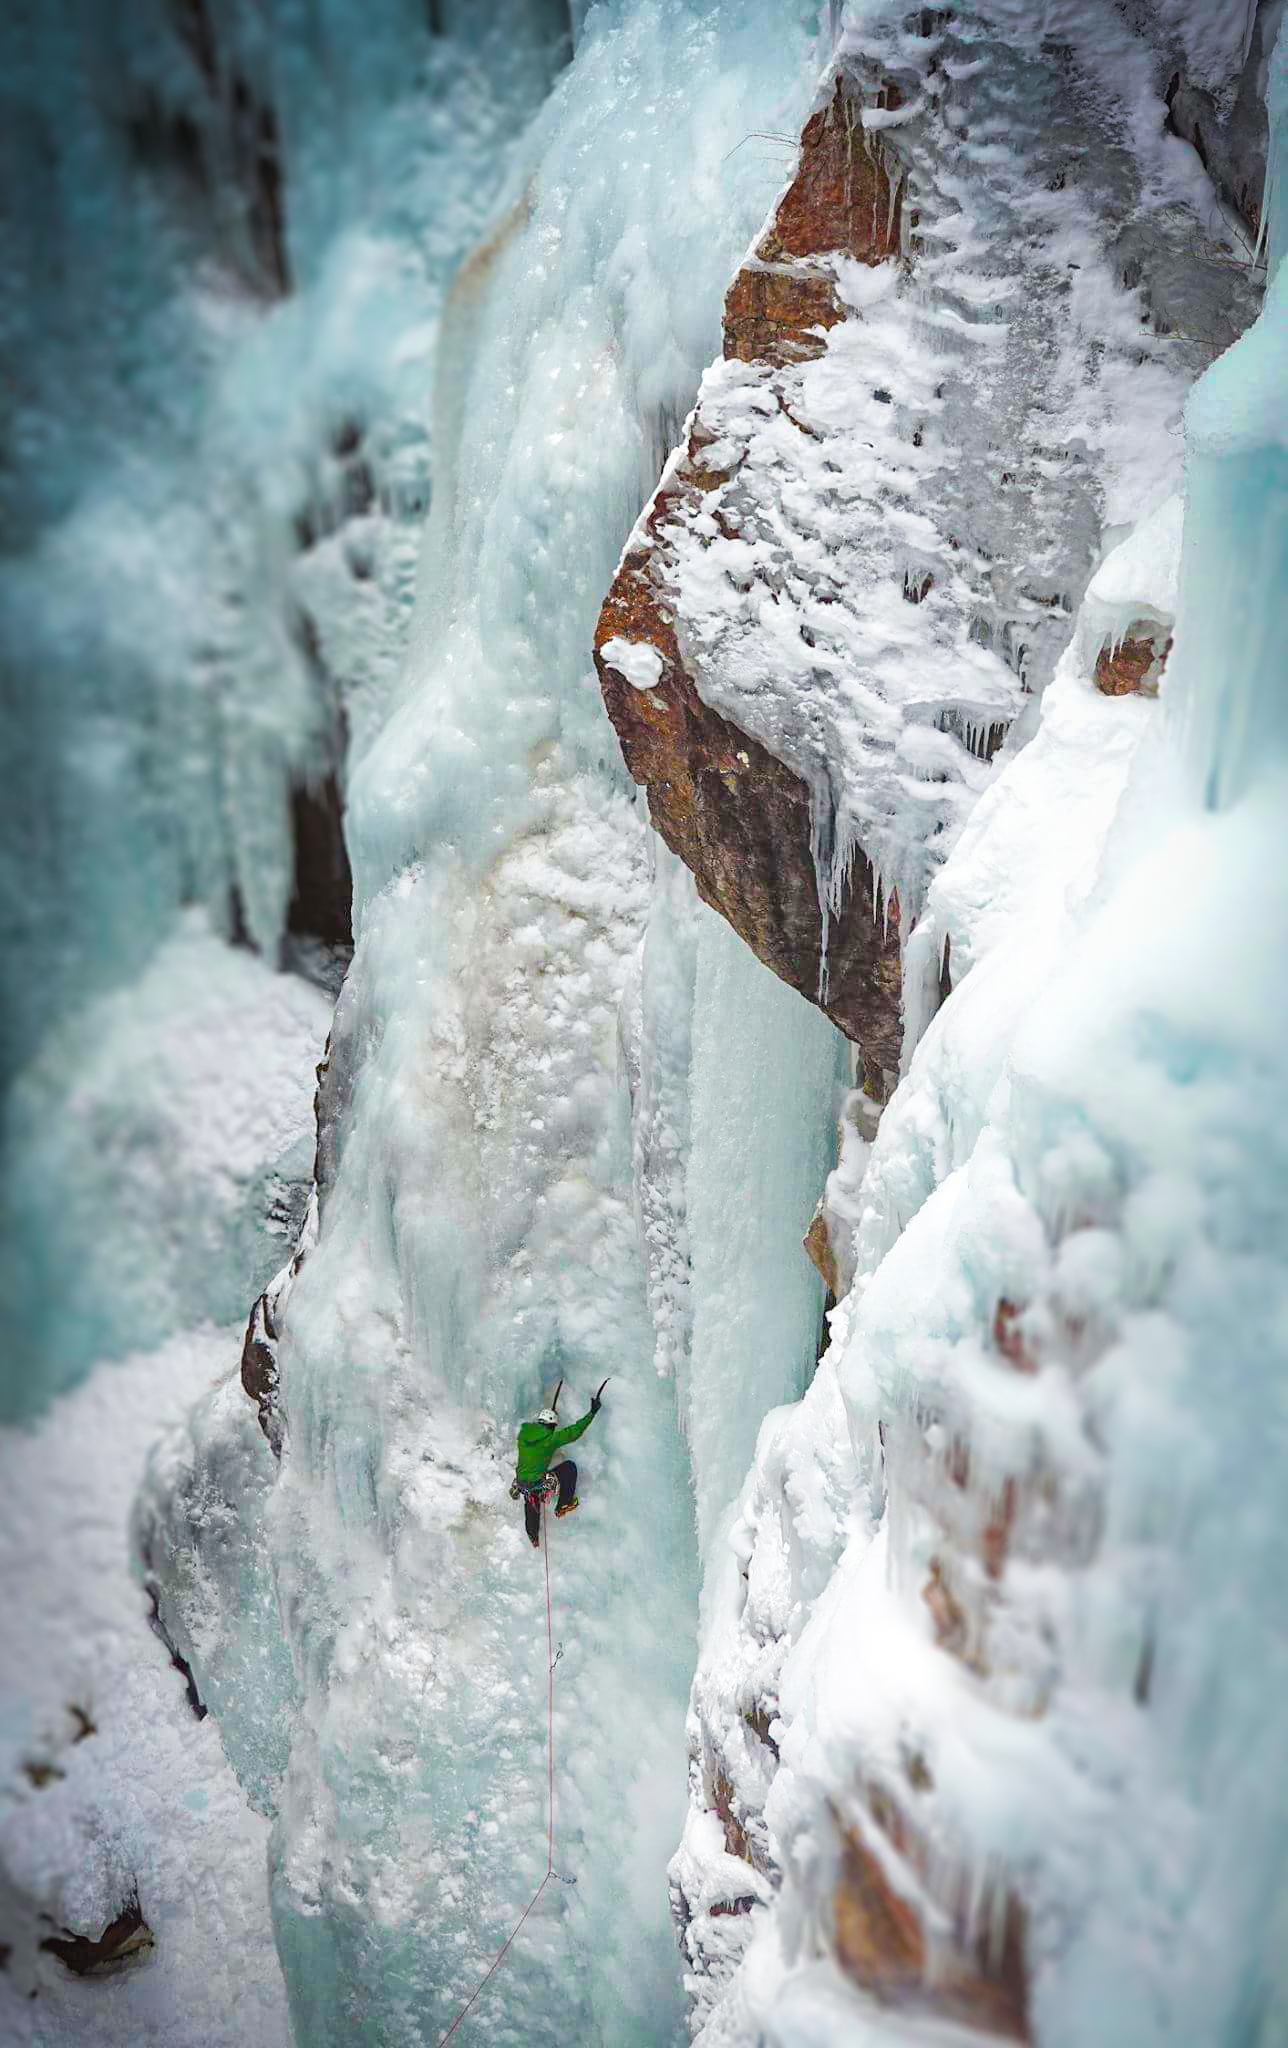 Derek Castonguay on Tangled Up In Blue WI4, Ouray CO